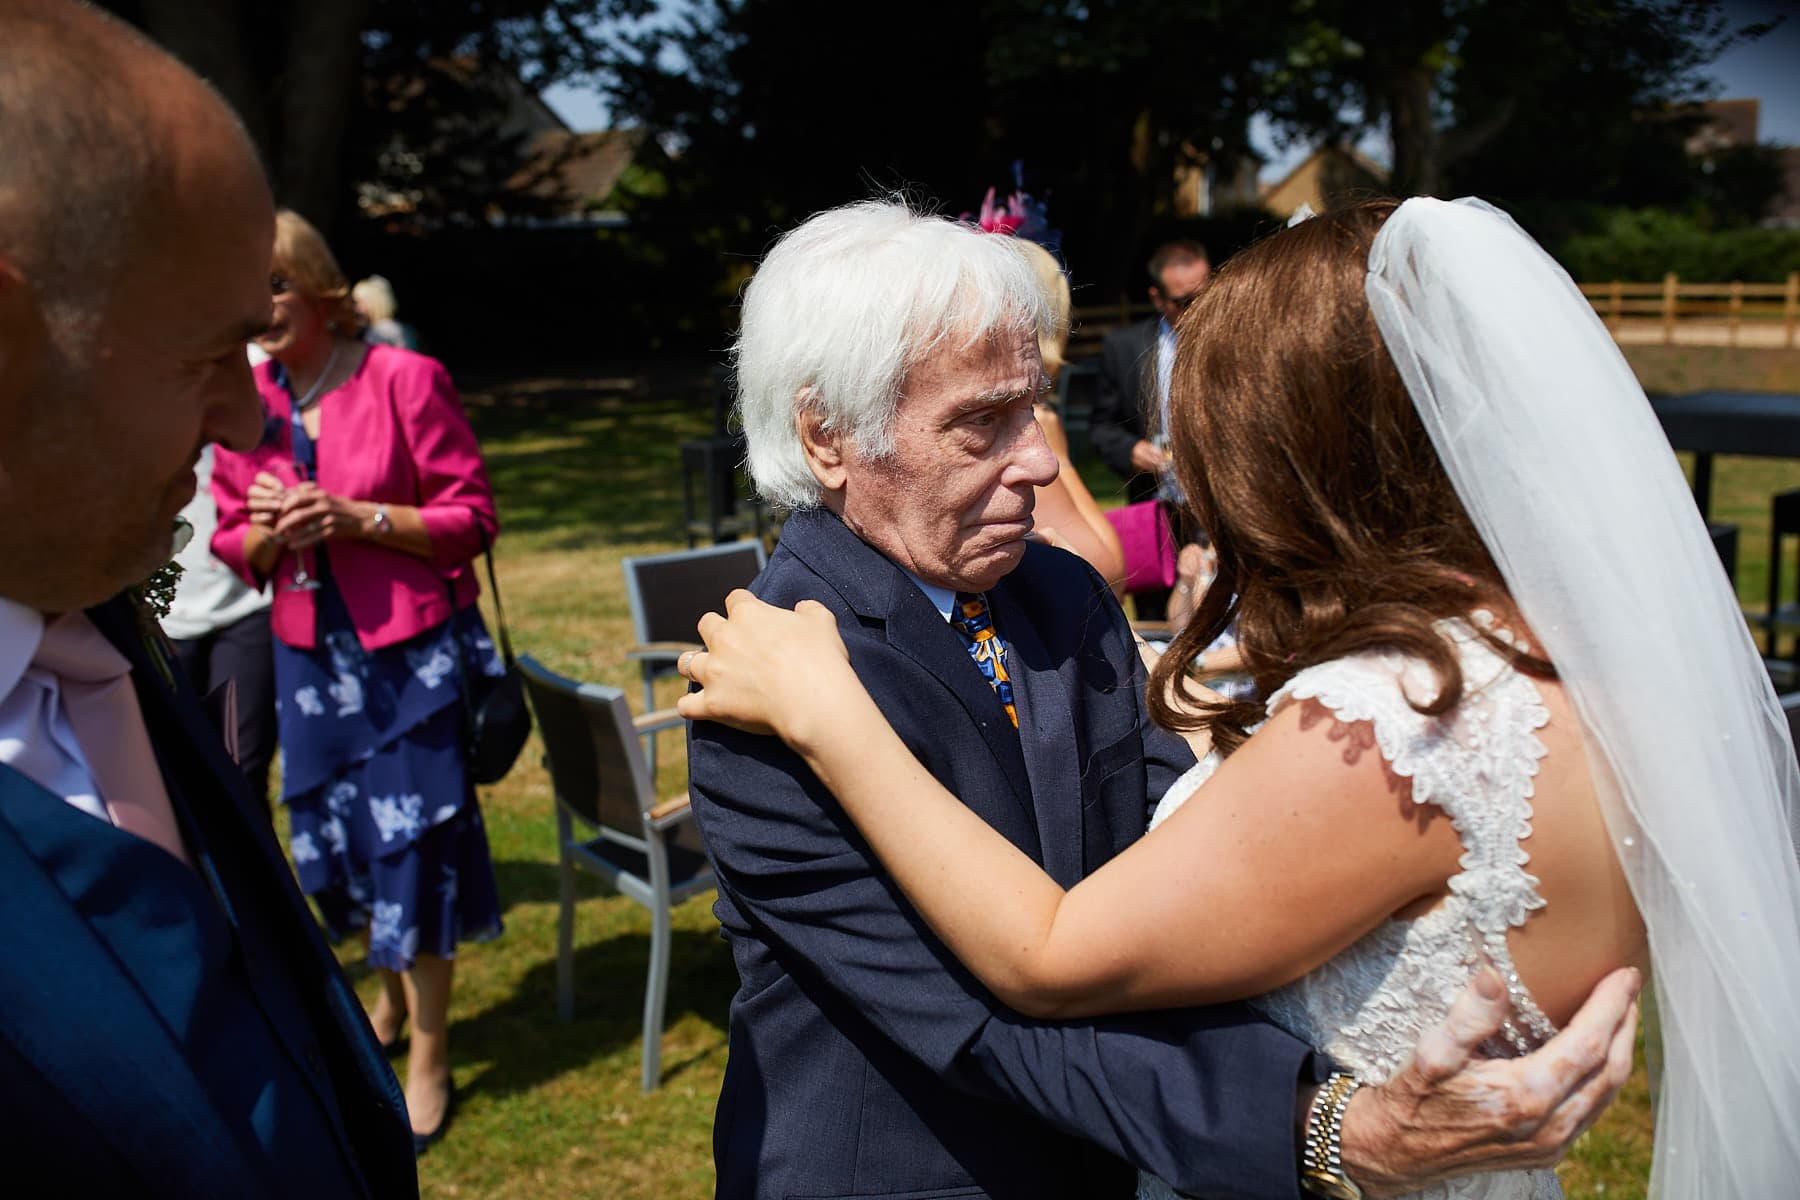 AS grandfather embraces his daughter with complete adoration on her wedding day.